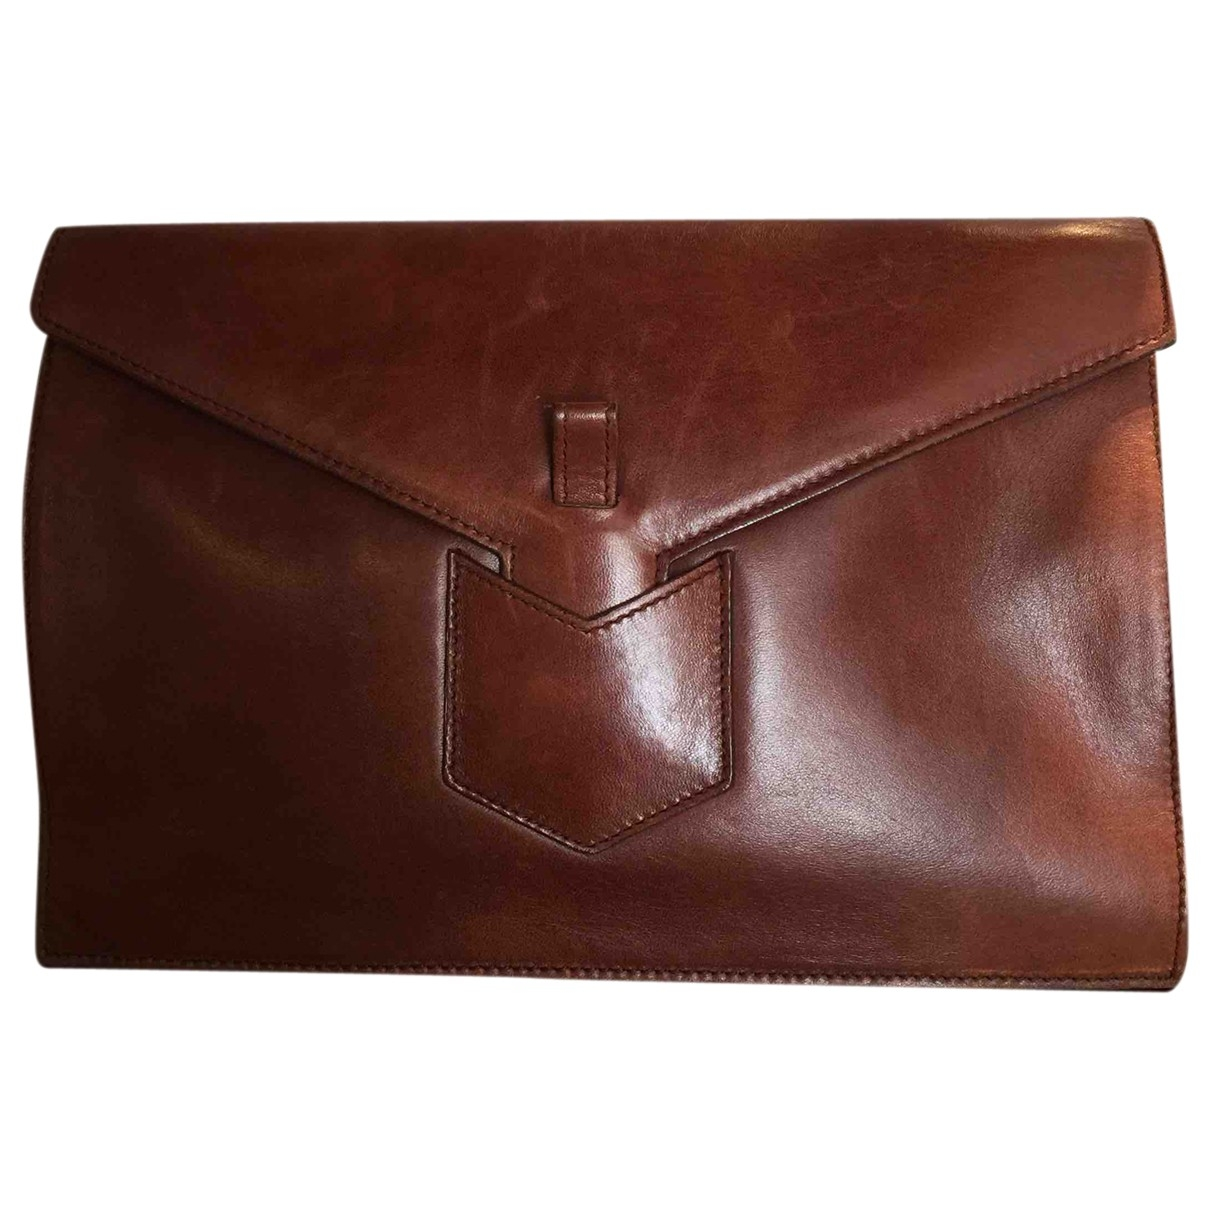 Yves Saint Laurent \N Brown Leather handbag for Women \N